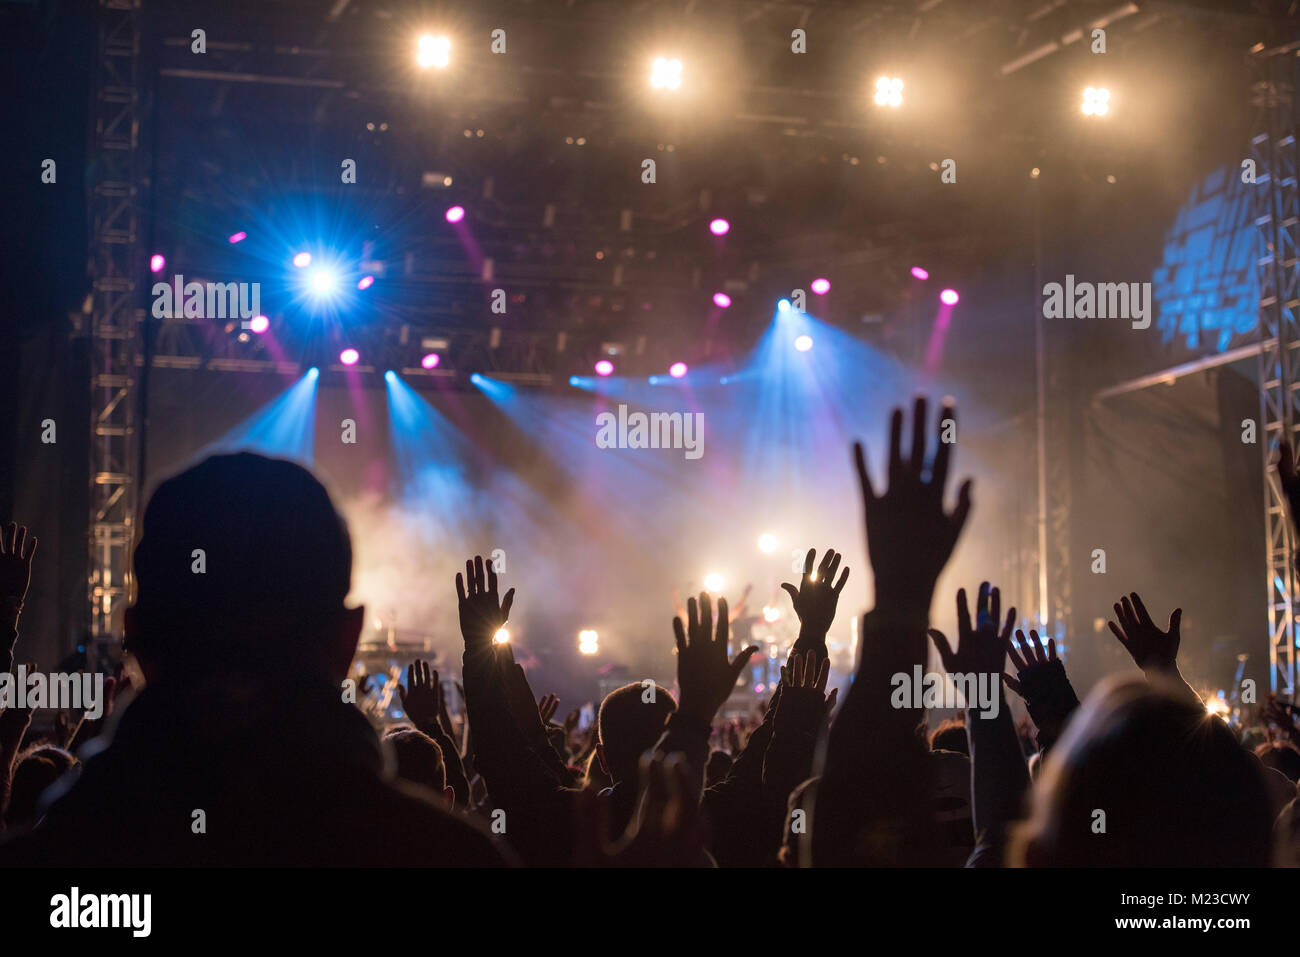 Christians raising their hands in praise and worship at a night music concert - Stock Image